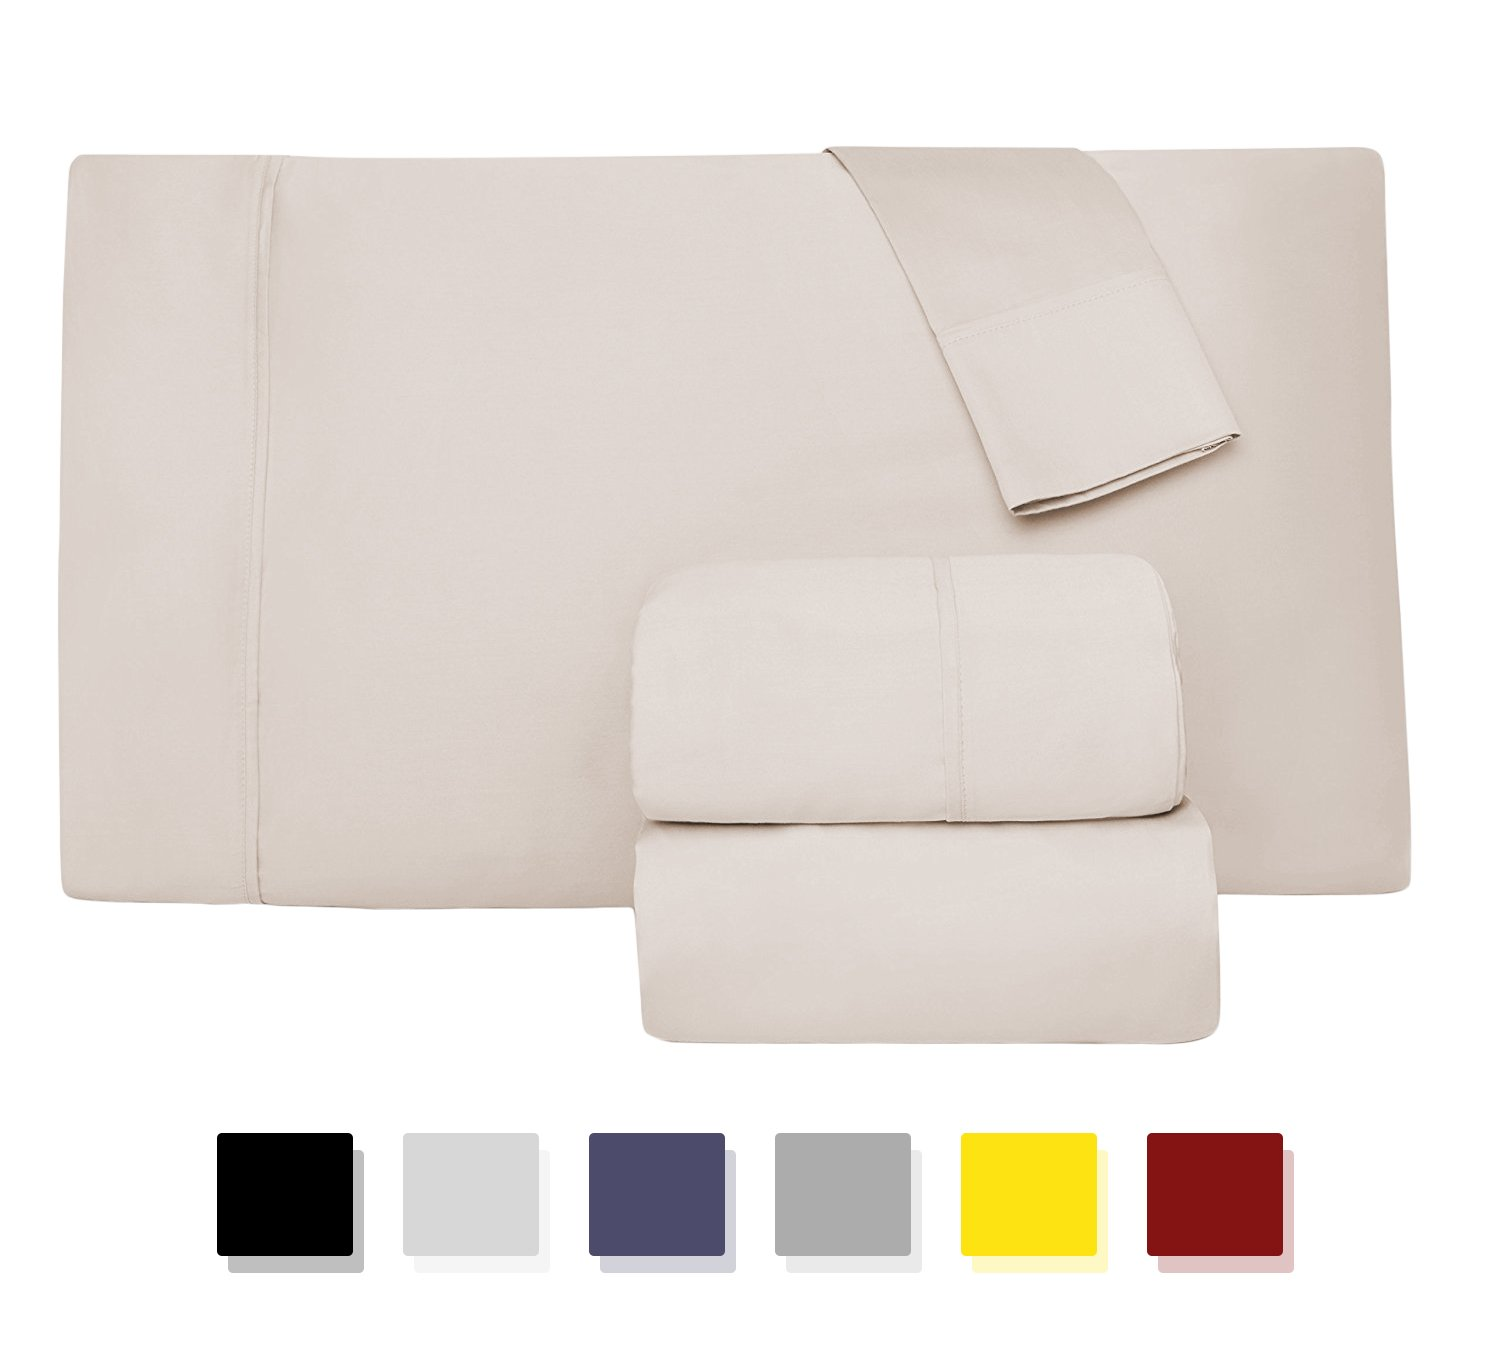 Comfy Sheets Luxury 100% Egyptian Cotton - Genuine 1000 Thread Count 4 Piece Sheet Set-Fits Mattress Up to 18'' Deep Pocket (California King, Cream)